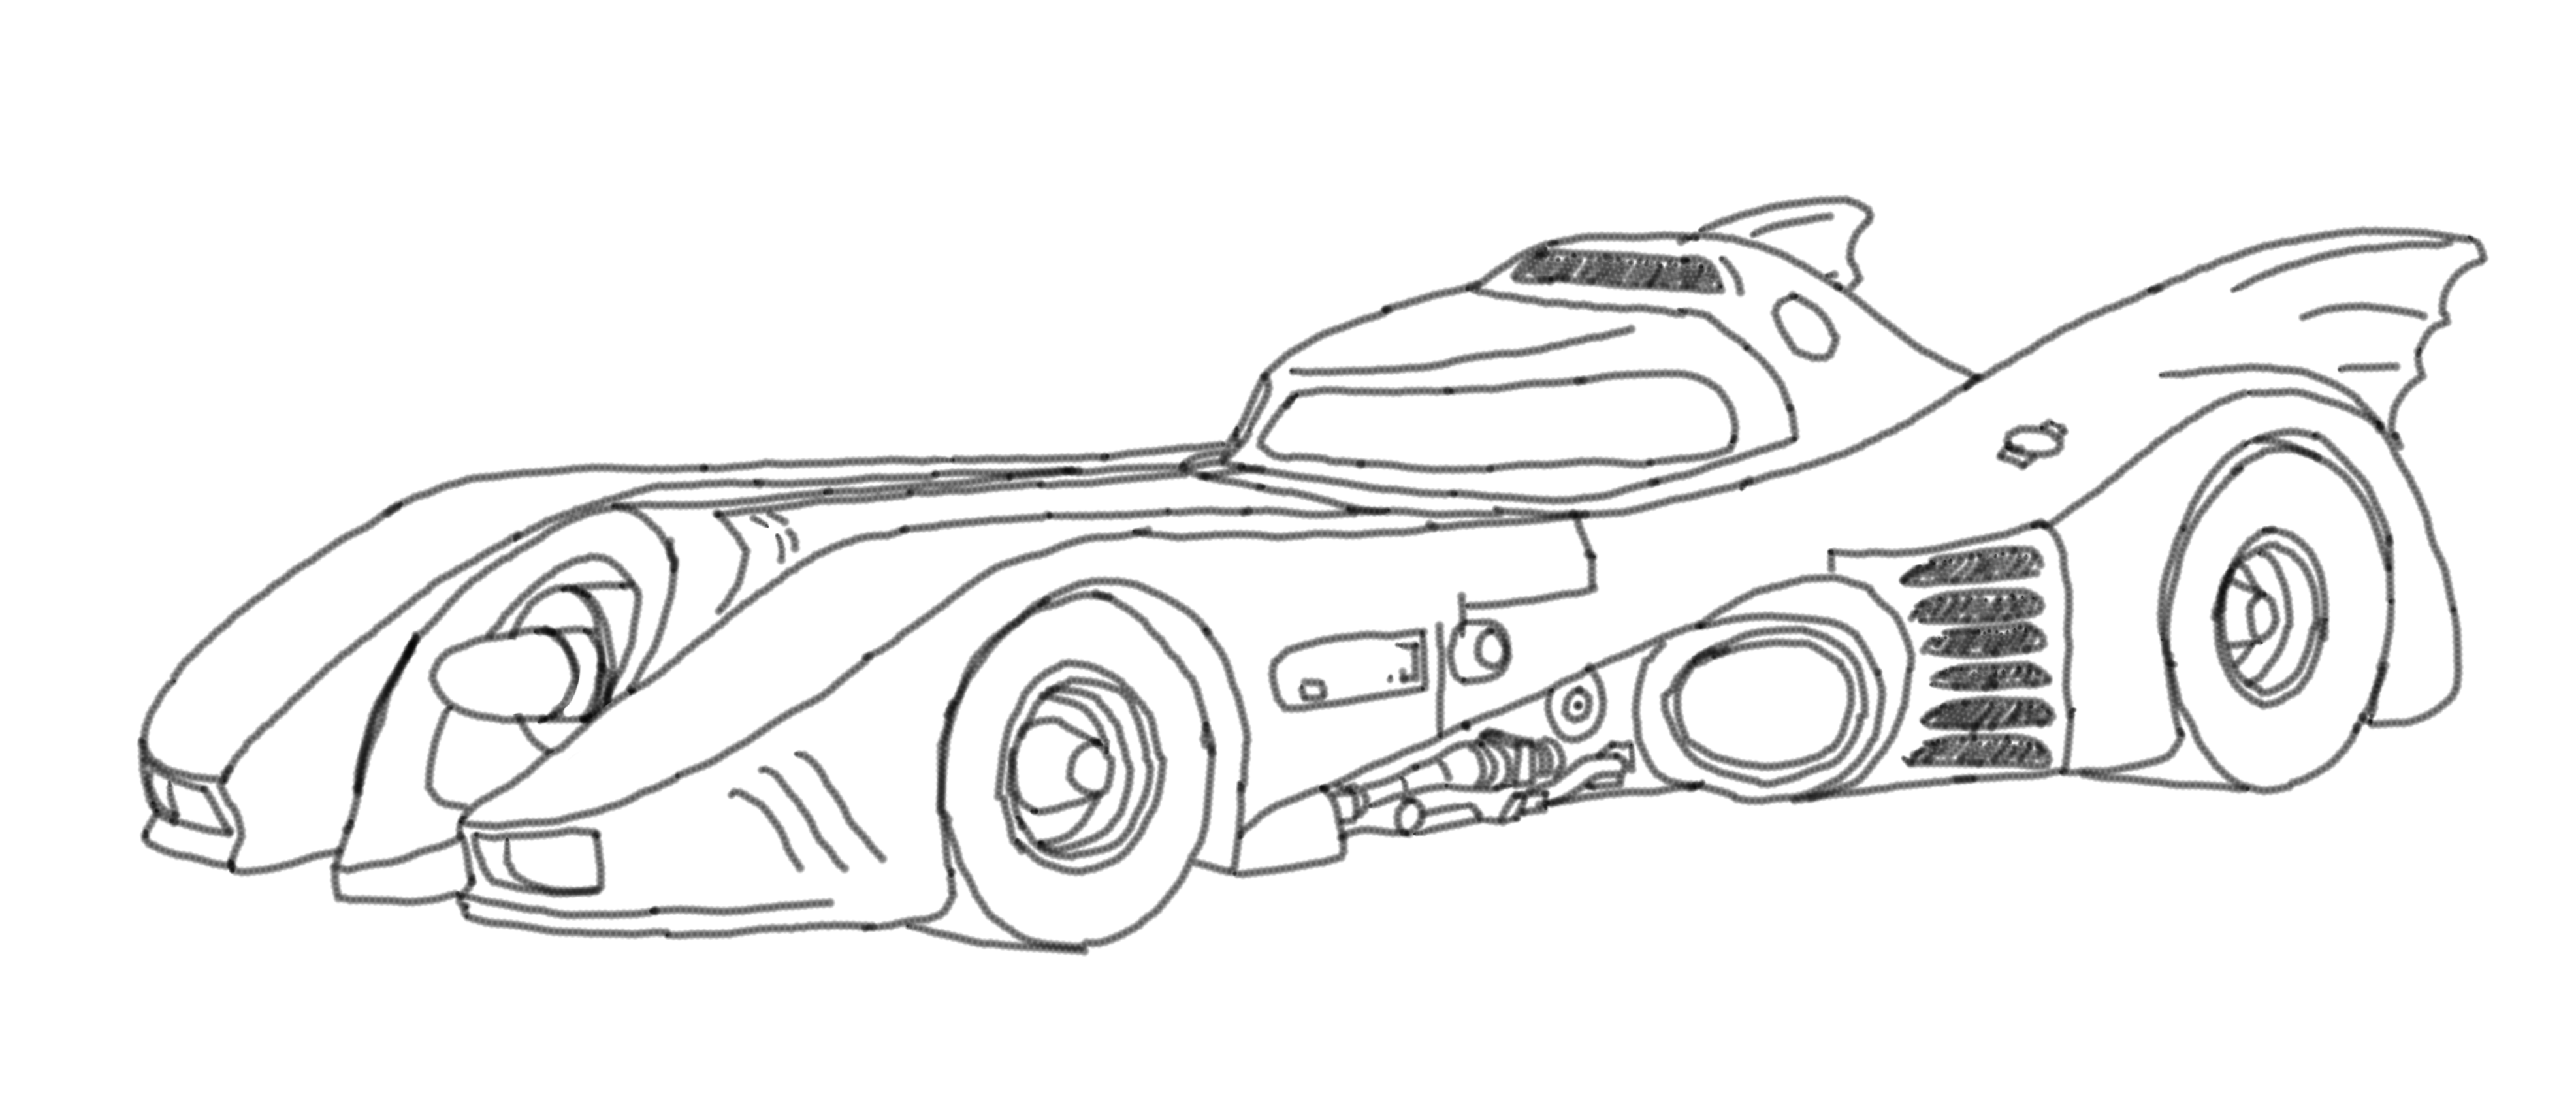 Batmobile Drawing | Www.imgkid.com - The Image Kid Has It!